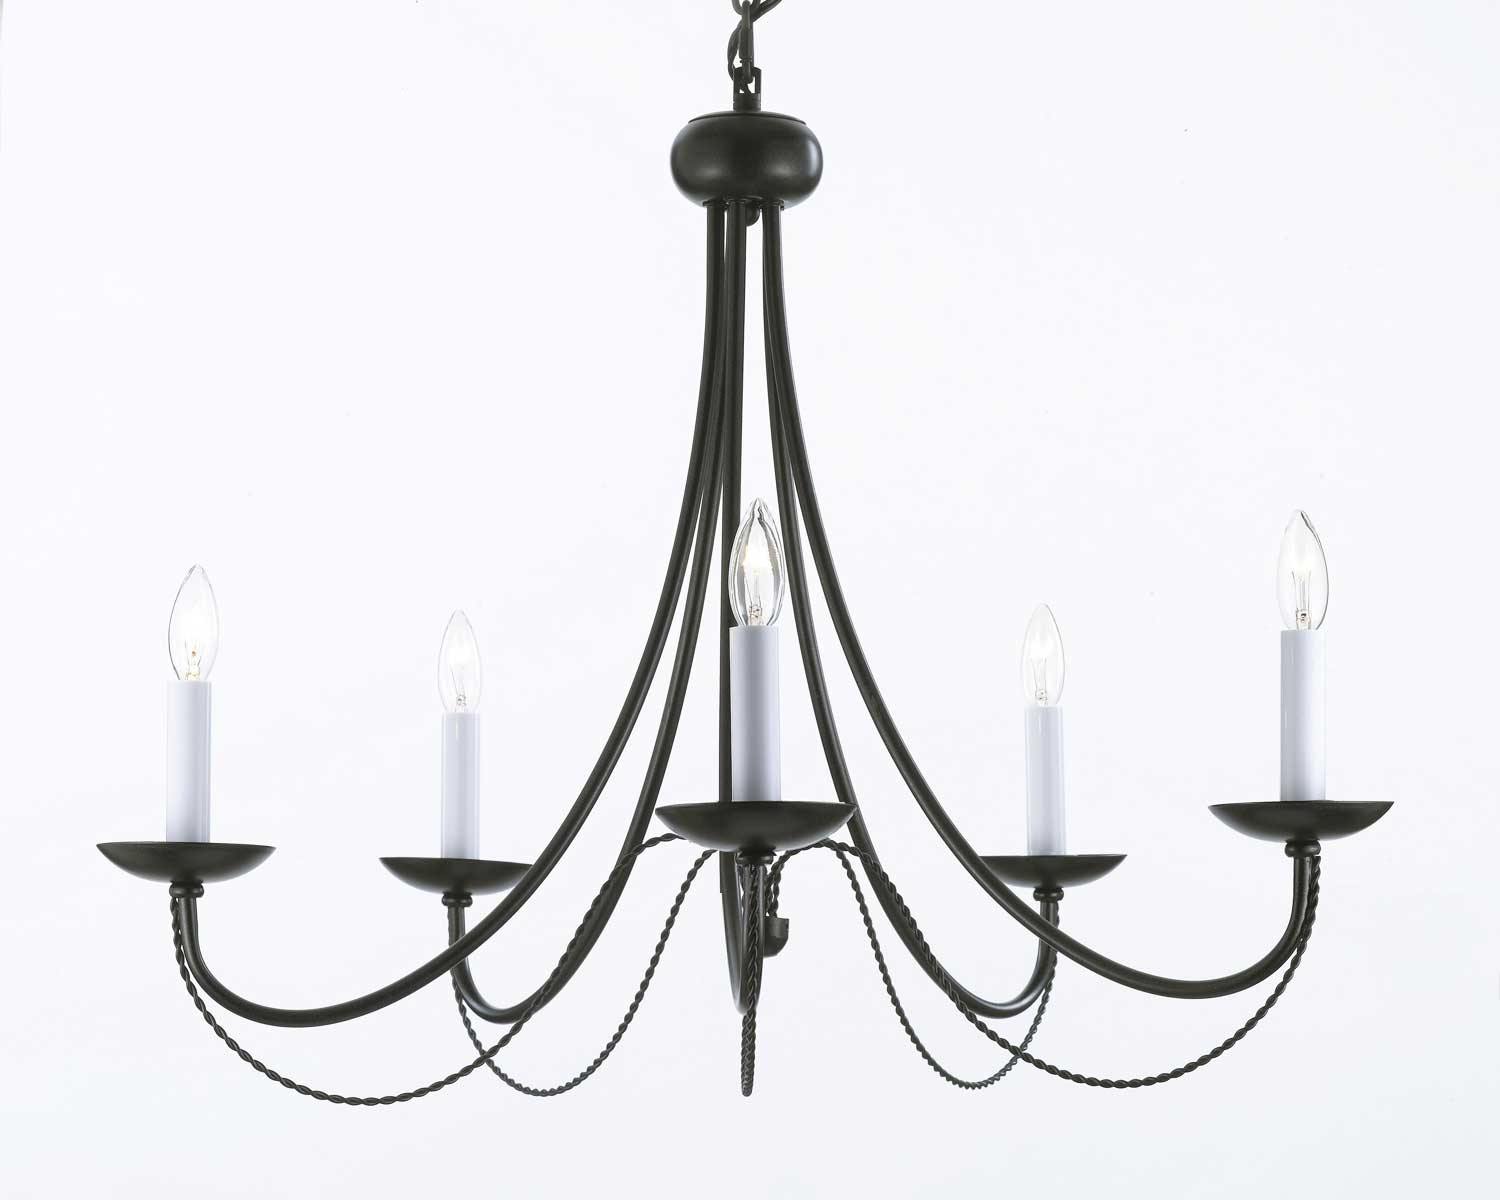 A7 4035 Gallery Wrought Without Crystal Wrought Iron Chandelier Intended For Modern Wrought Iron Chandeliers (View 5 of 15)